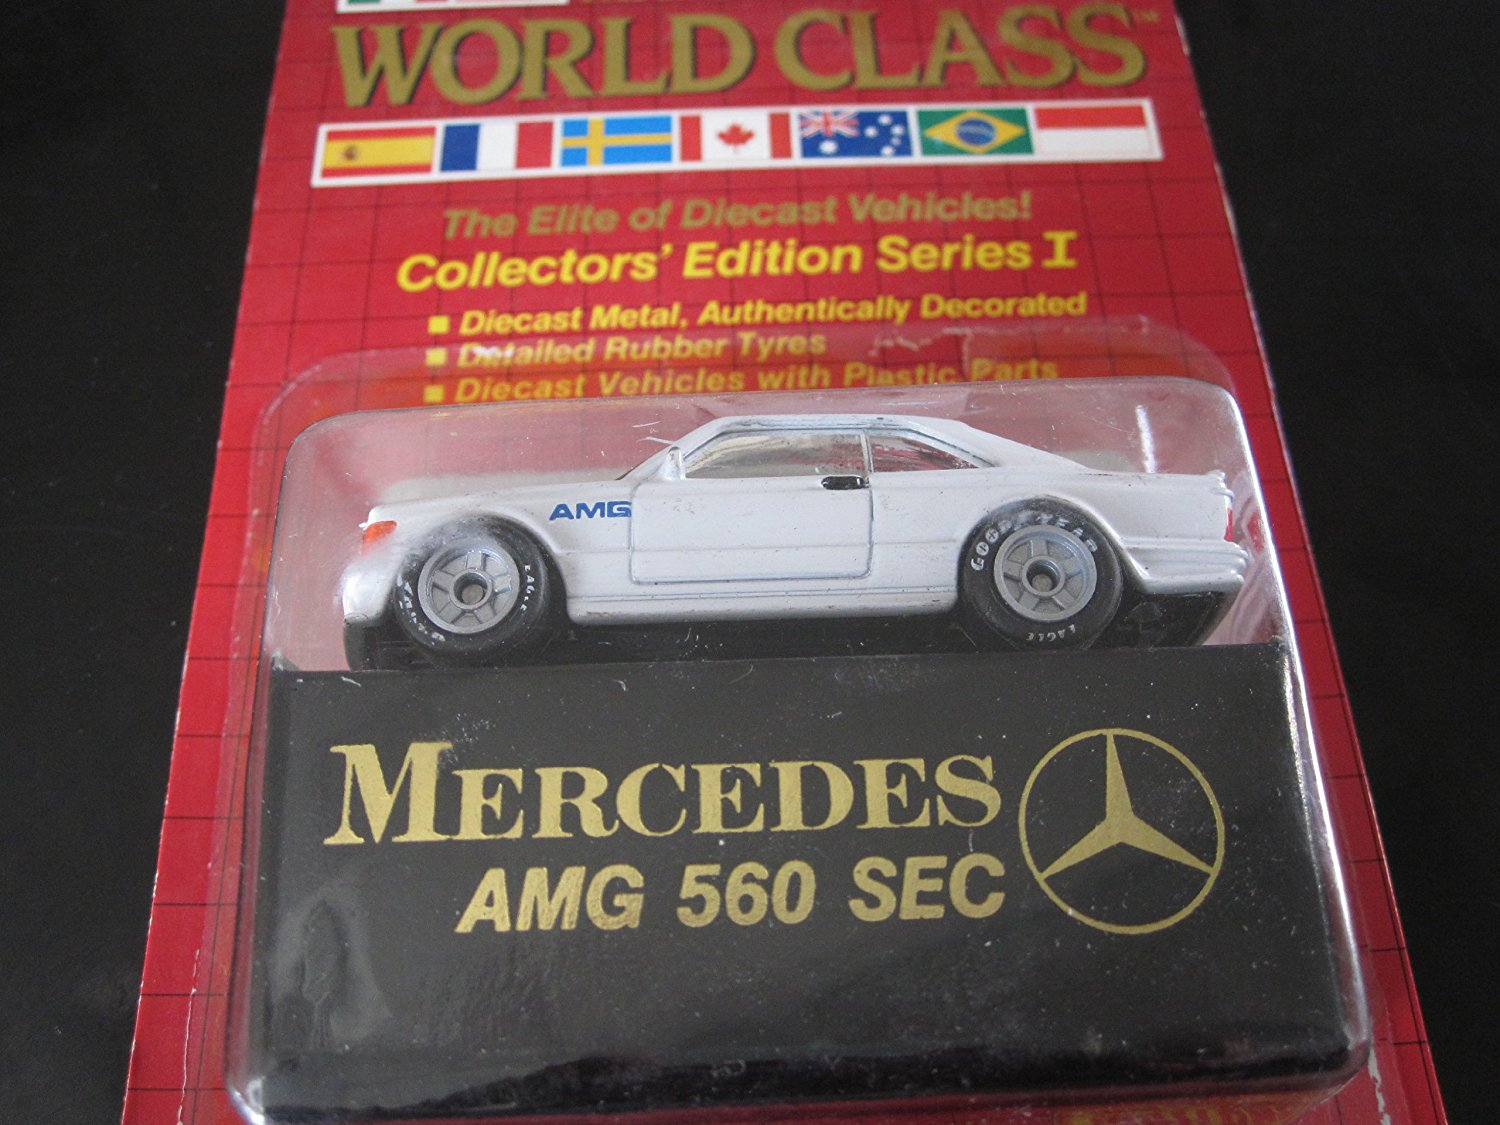 Cheap Mercedes 560 Sec Amg Widebody For Sale, find Mercedes